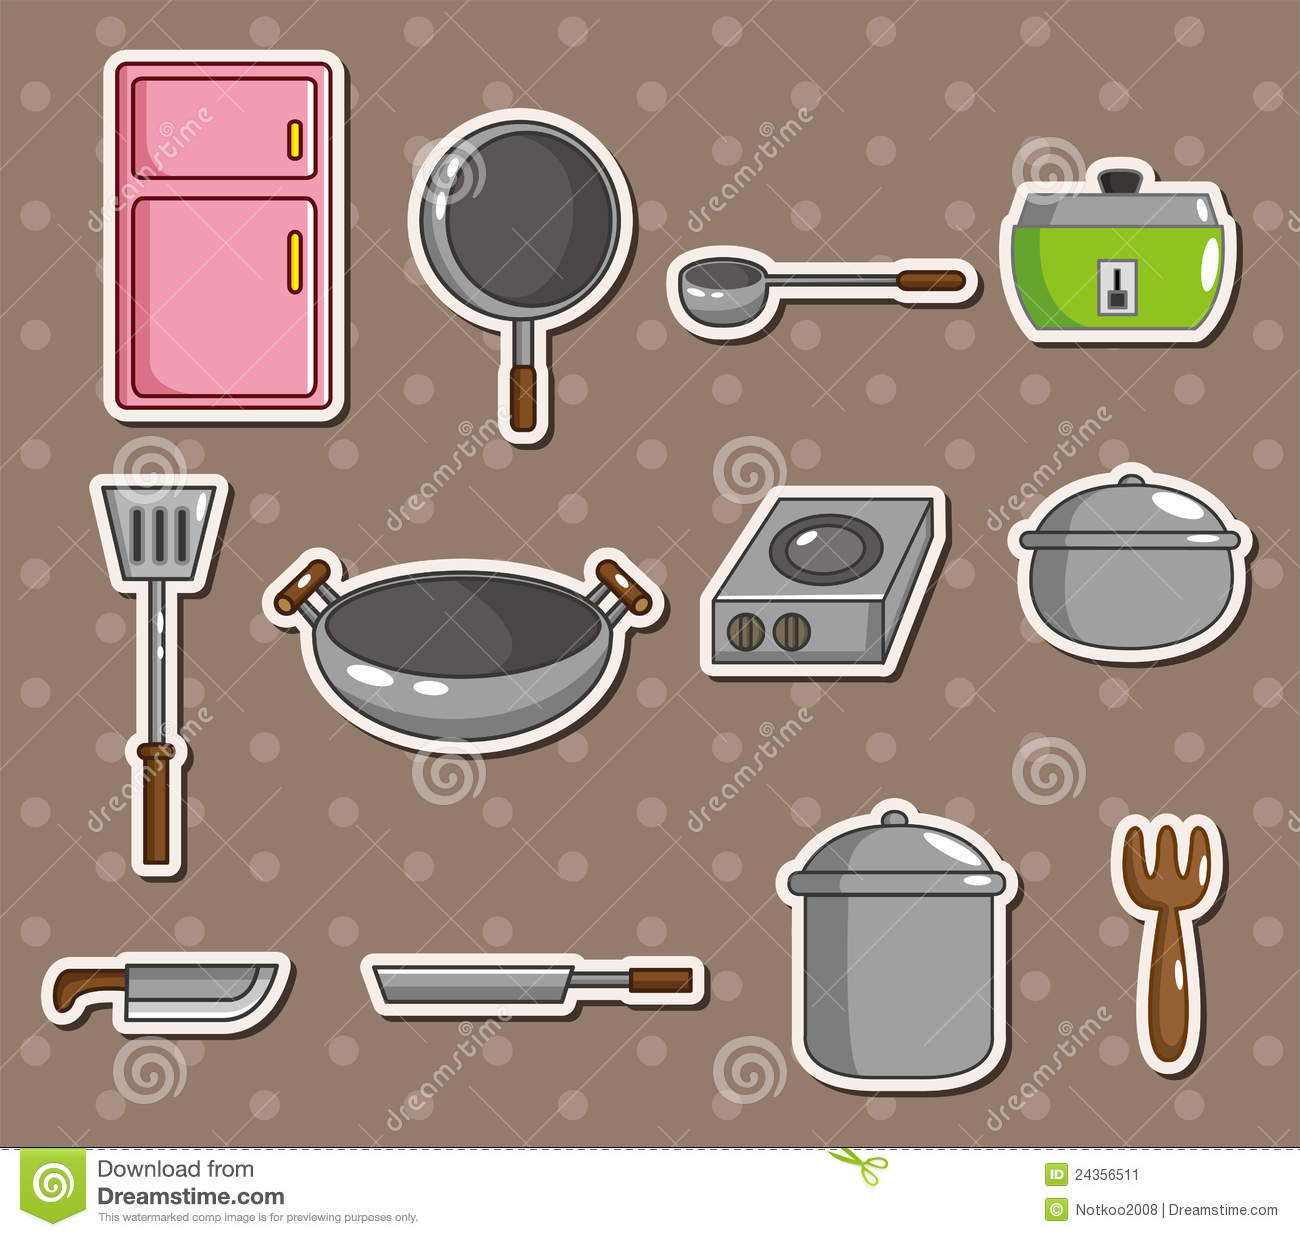 Cartoon Kitchen Stickers Stock Image - Image: 24356511